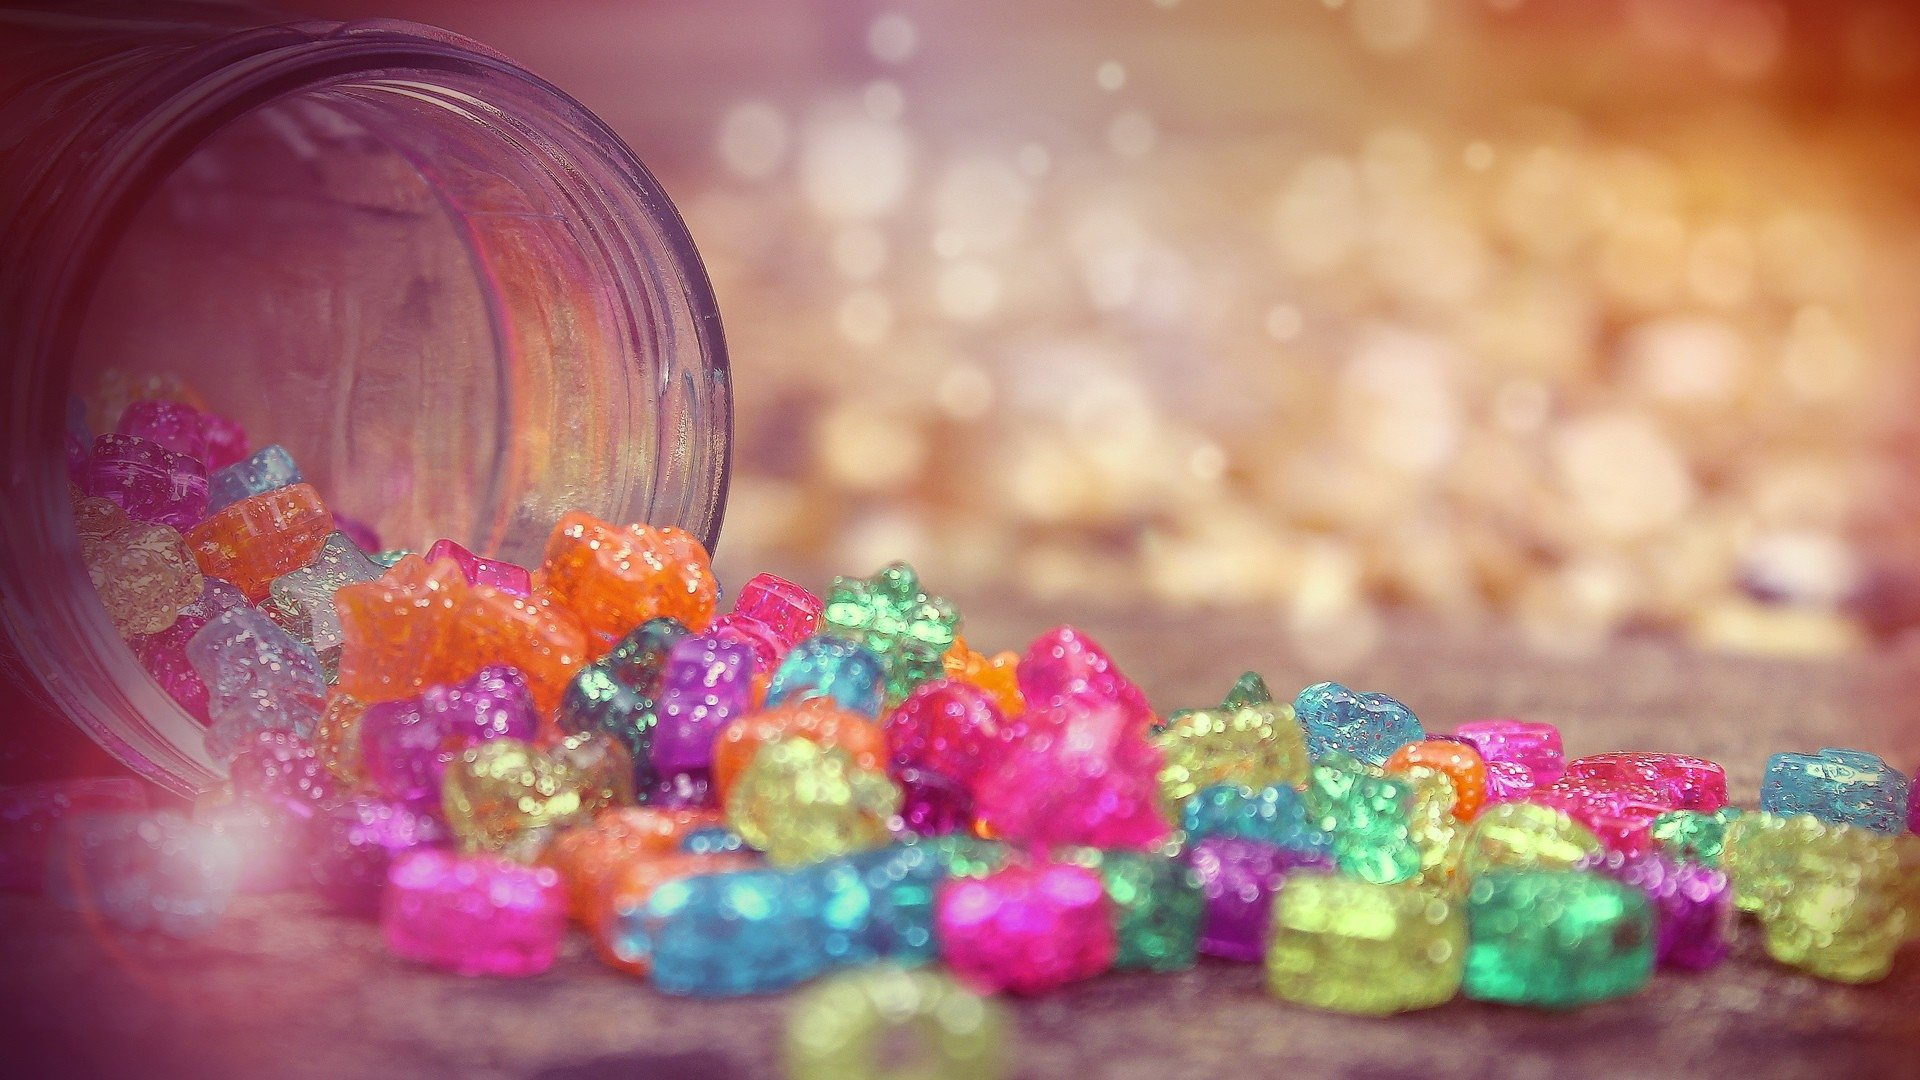 224 candy hd wallpapers | background images - wallpaper abyss